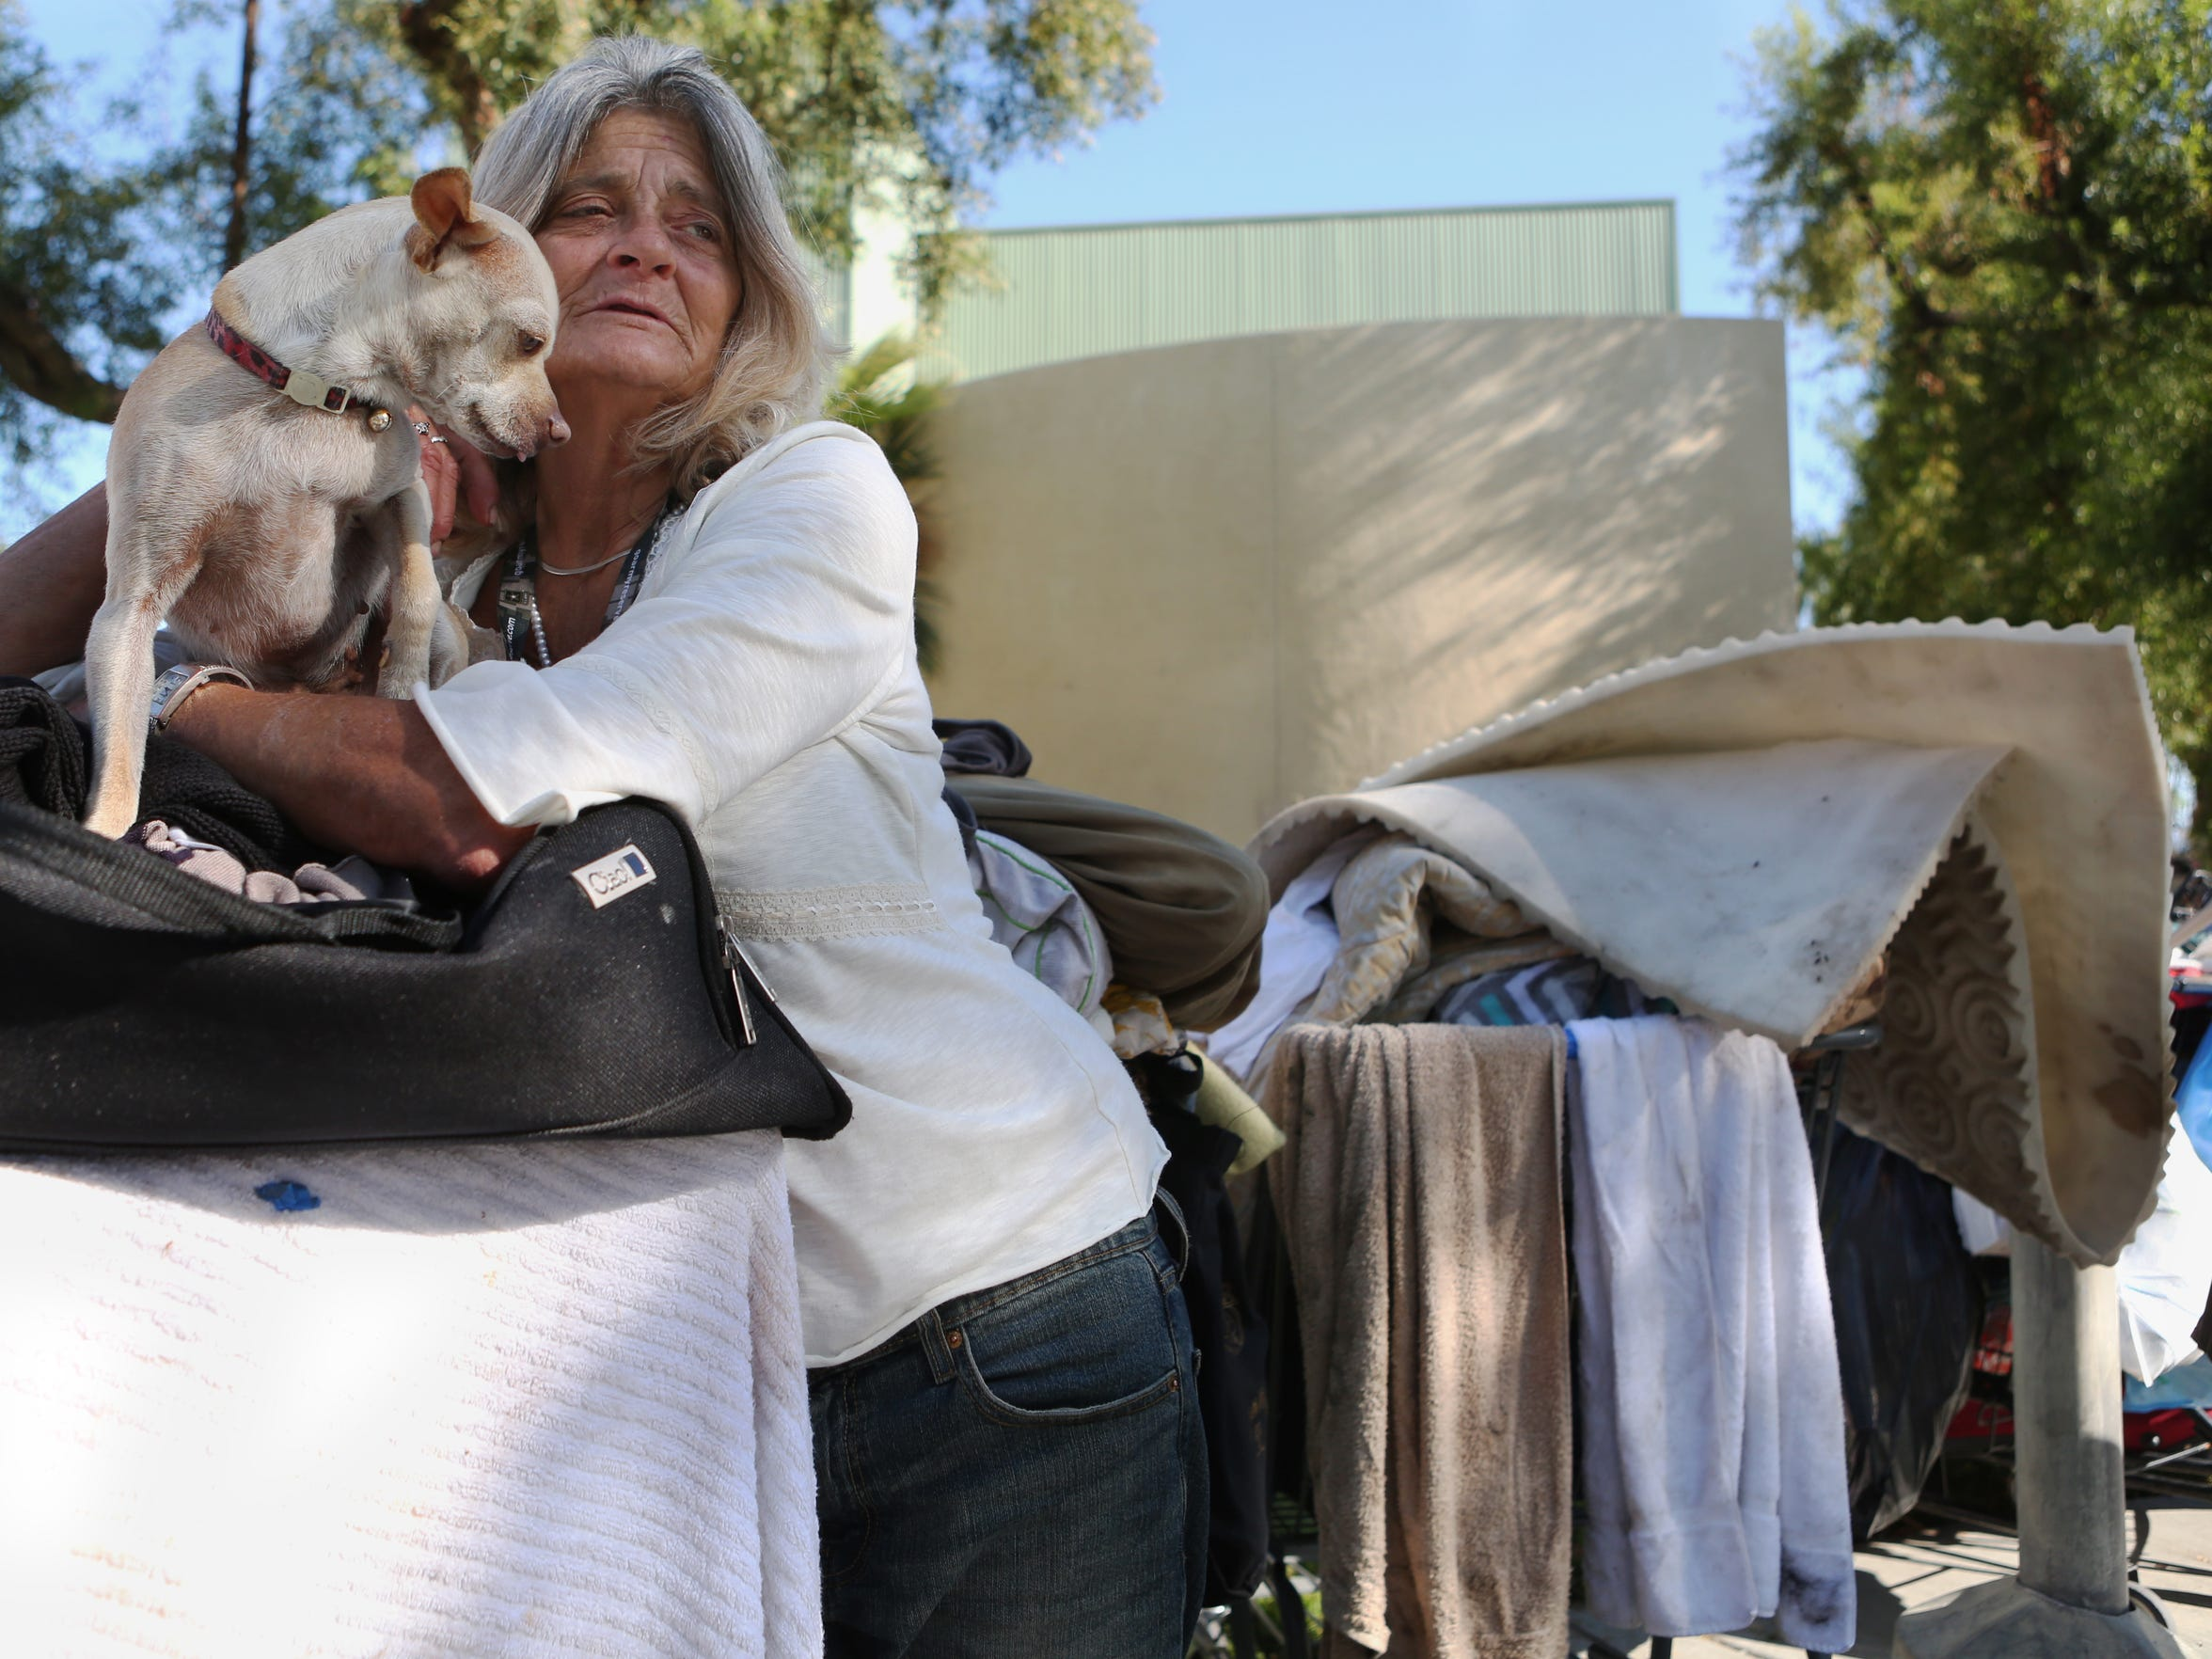 Karen Boatner talks about being homeless at Sunrise Park on Wednesday, April 13, 2016 in Palm Springs, Calif.